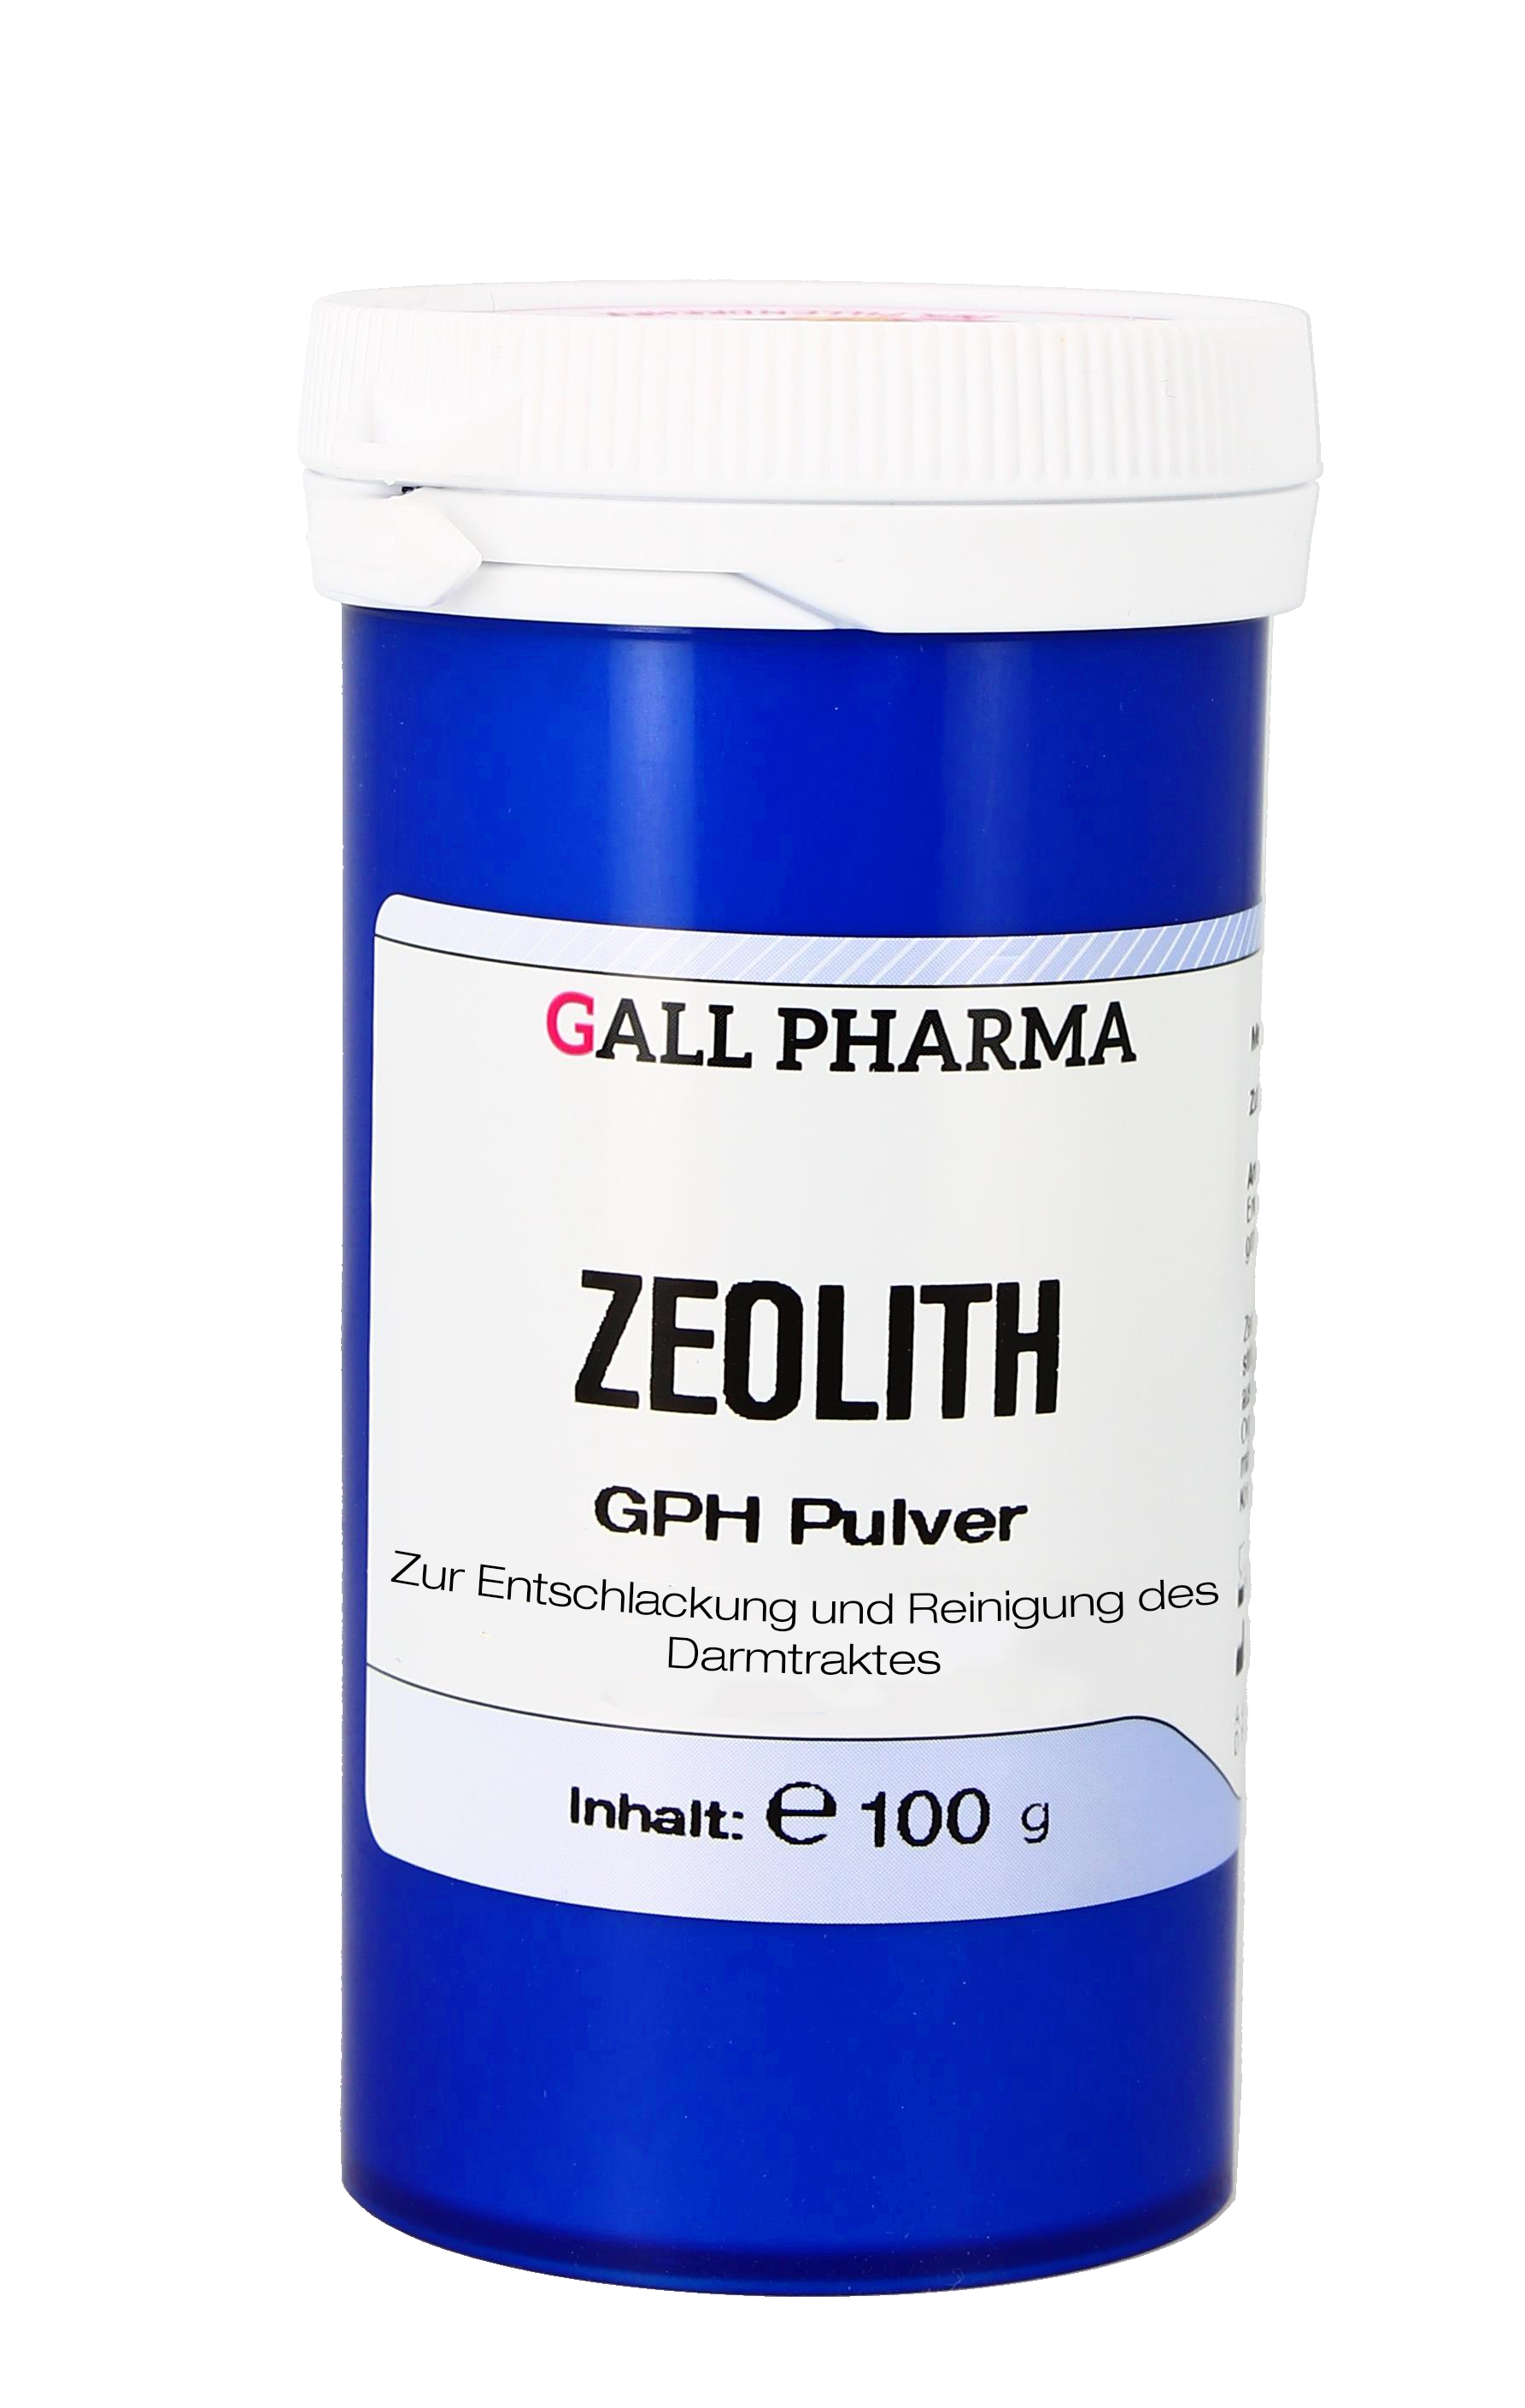 Zeolith GPH Pulver